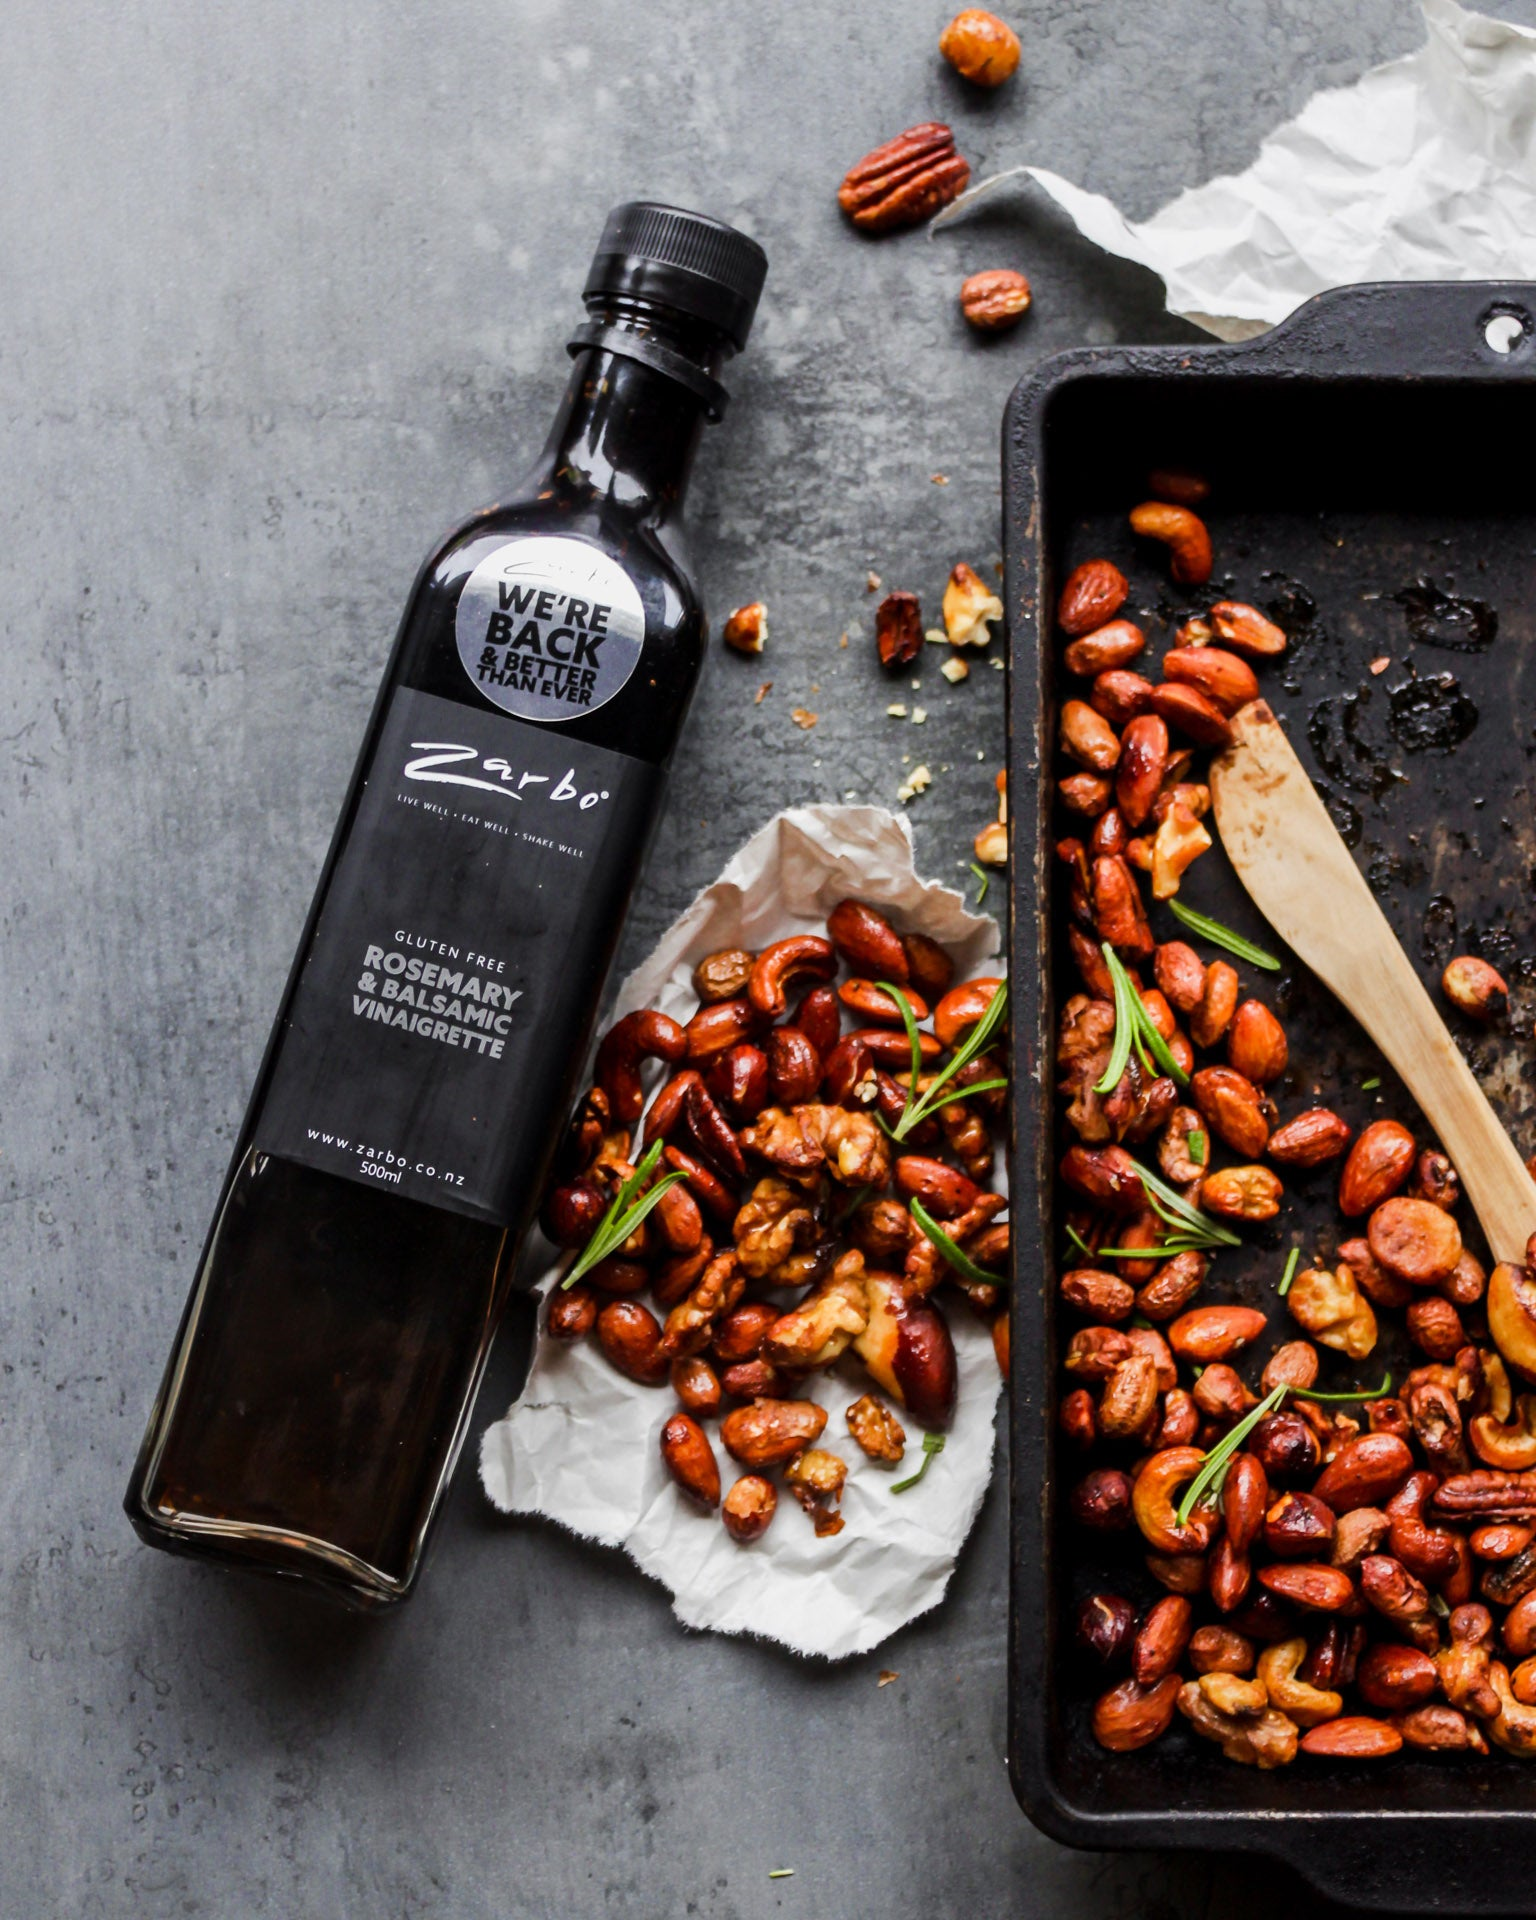 Rosemary & Balsamic Roasted Nuts